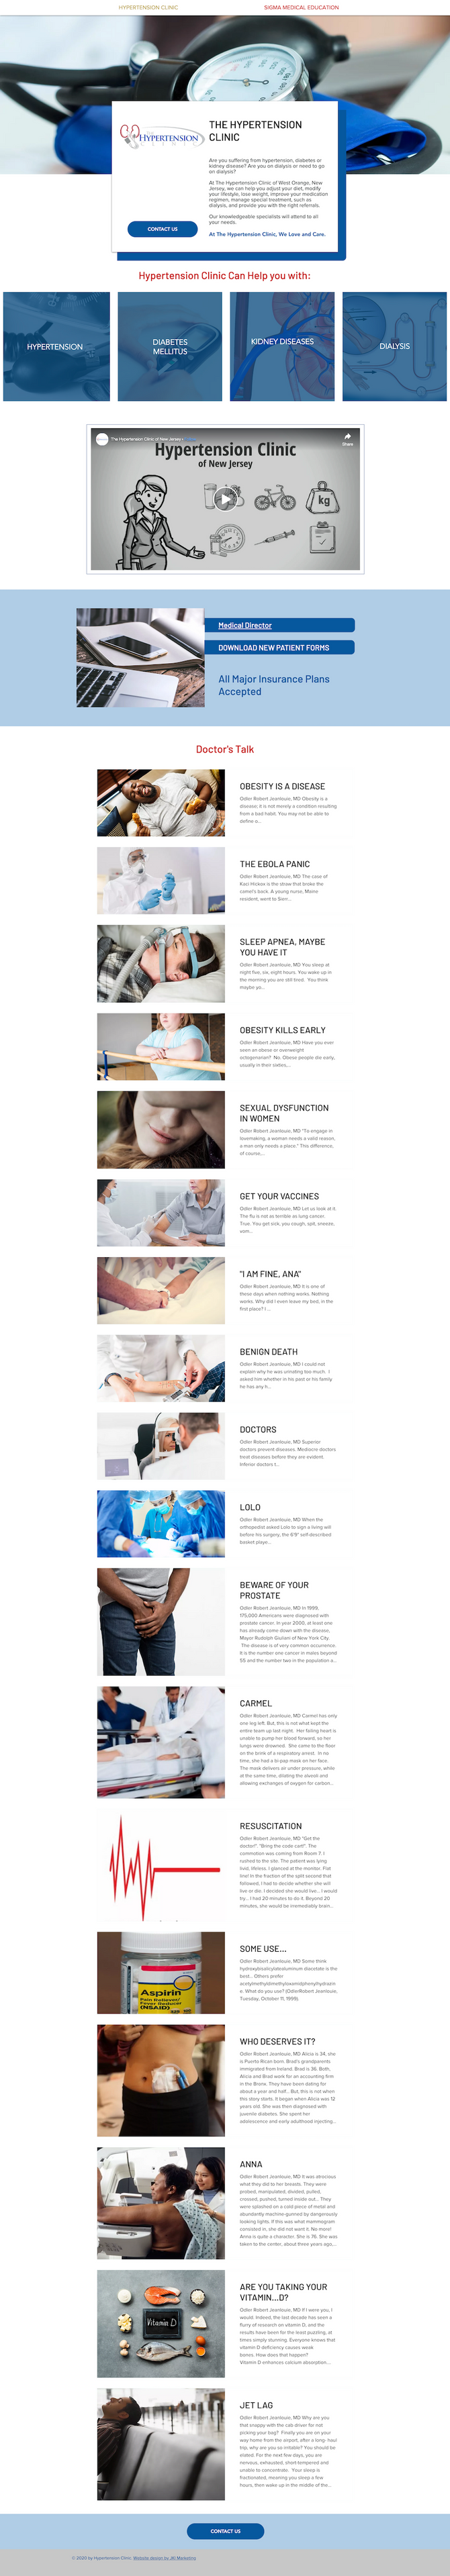 Website design for The Hypertension Clinic in New Jersey